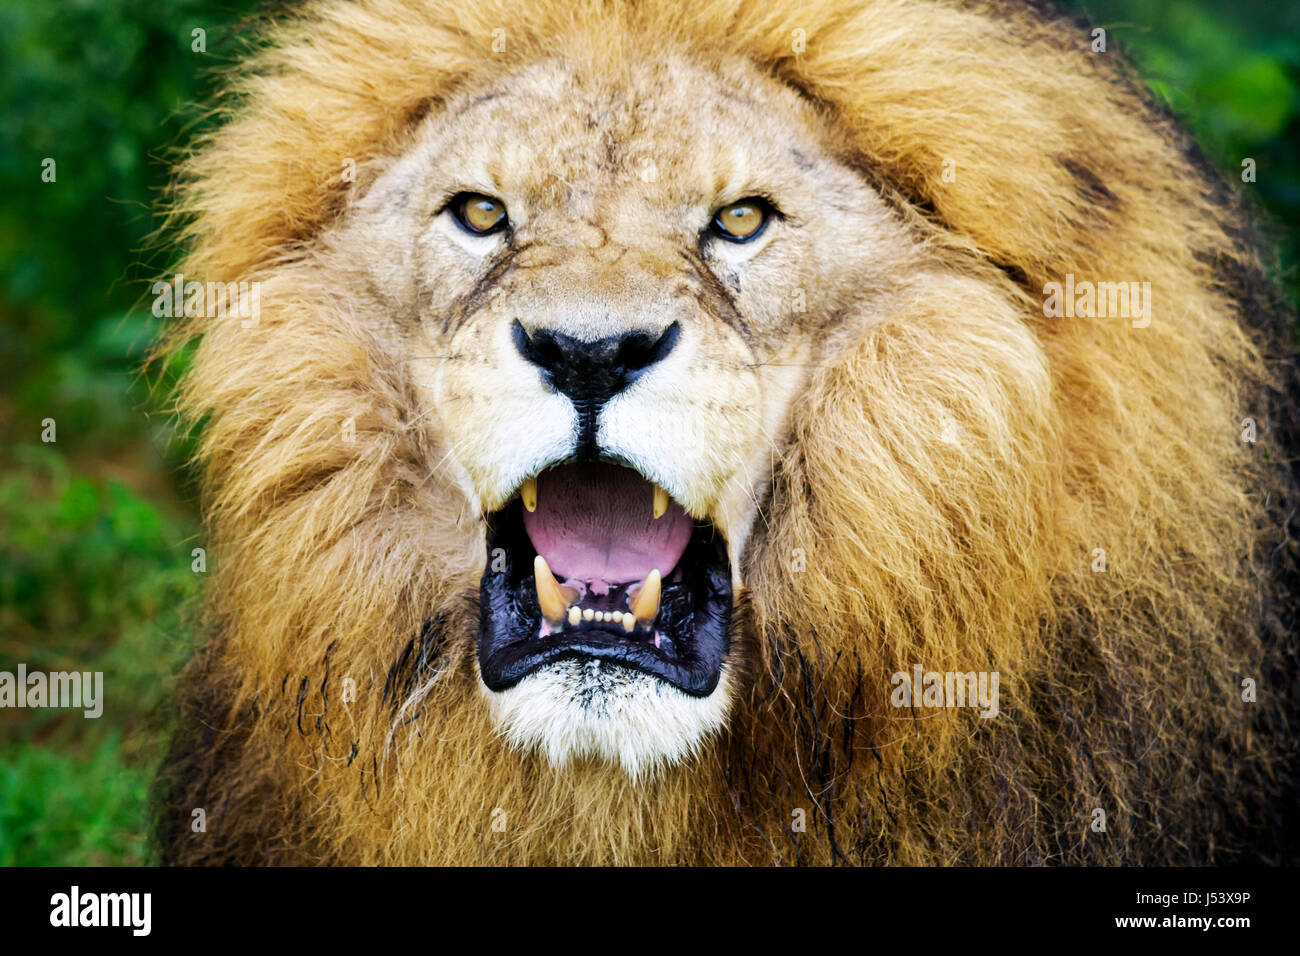 Arkansas Eureka Springs Turpentine Creek Wildlife Refuge rescuing exotic wild cats open habitat cage lion snarling - Stock Image